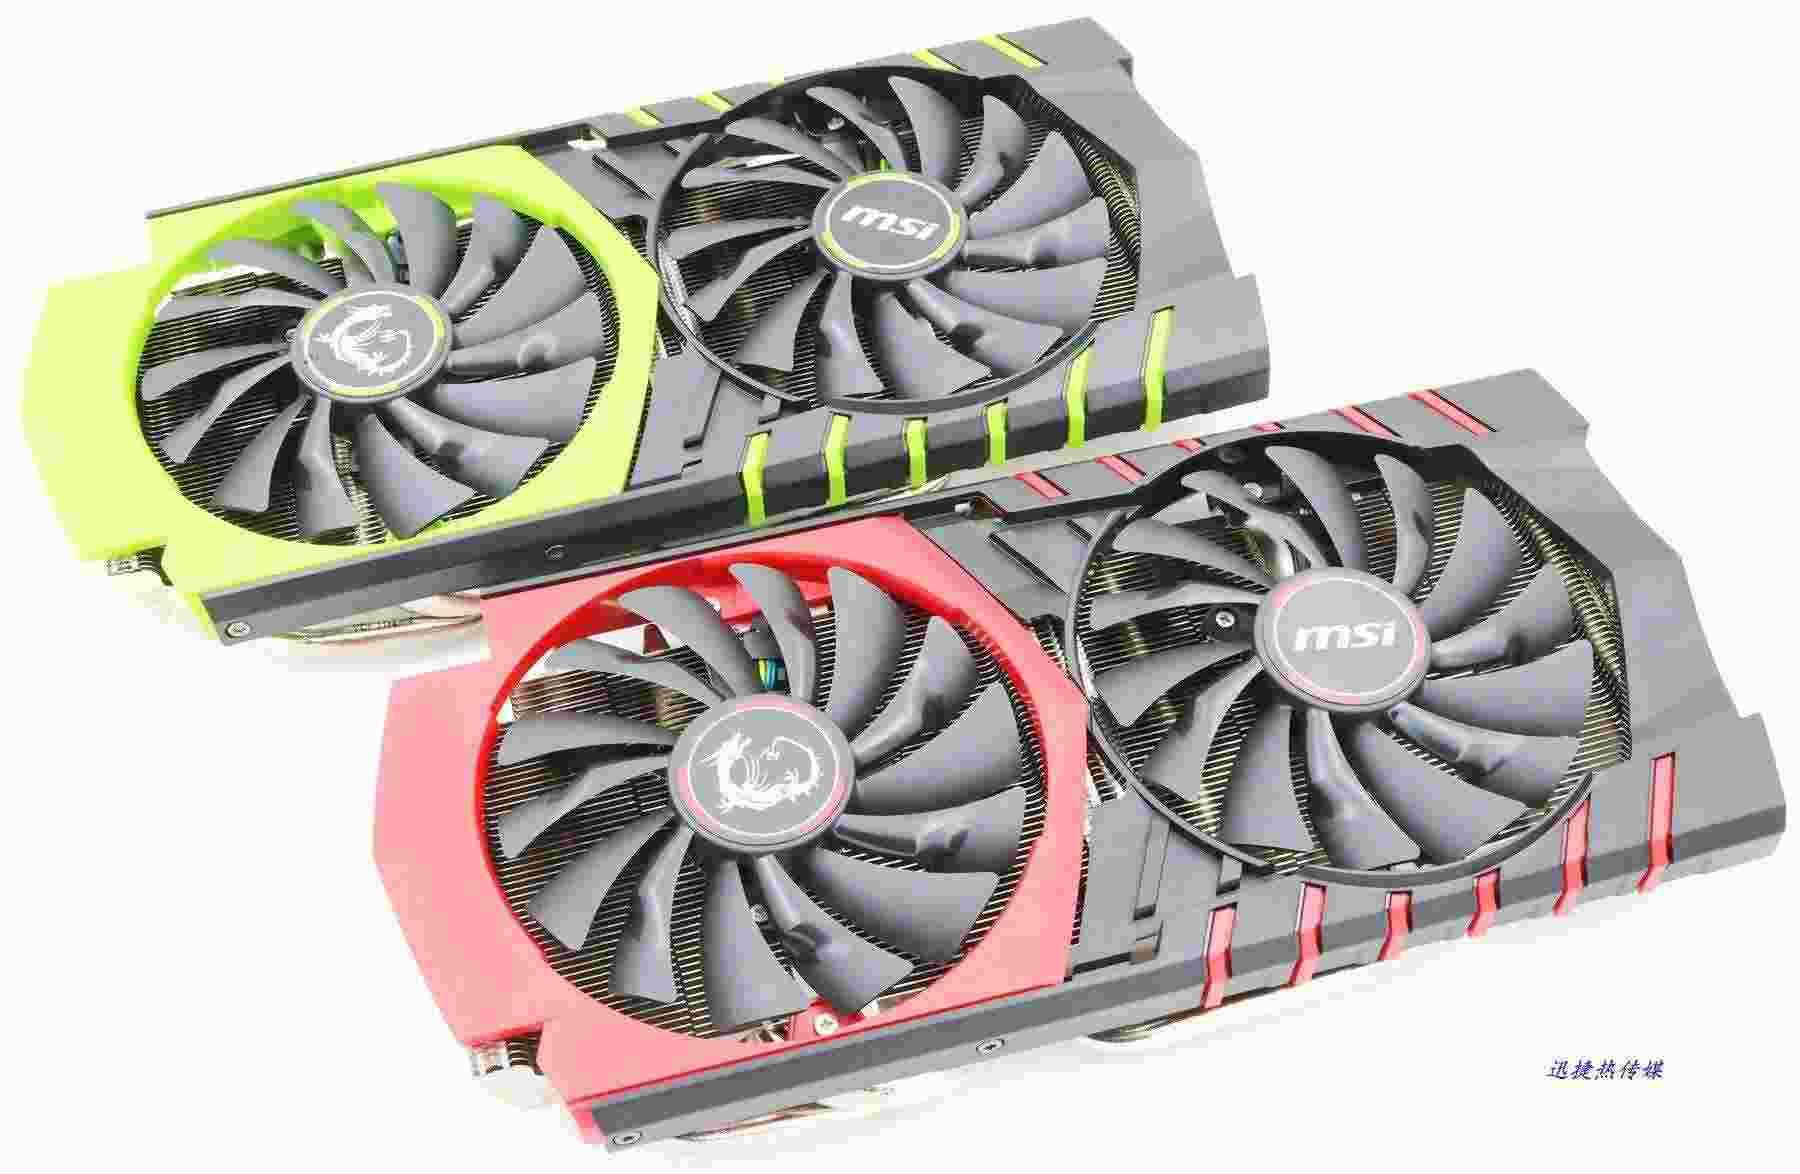 New Original for MSI GTX970 GAMING 4G/GTX970 GAMING 4G100E Edition graphics  card fan with heat sink